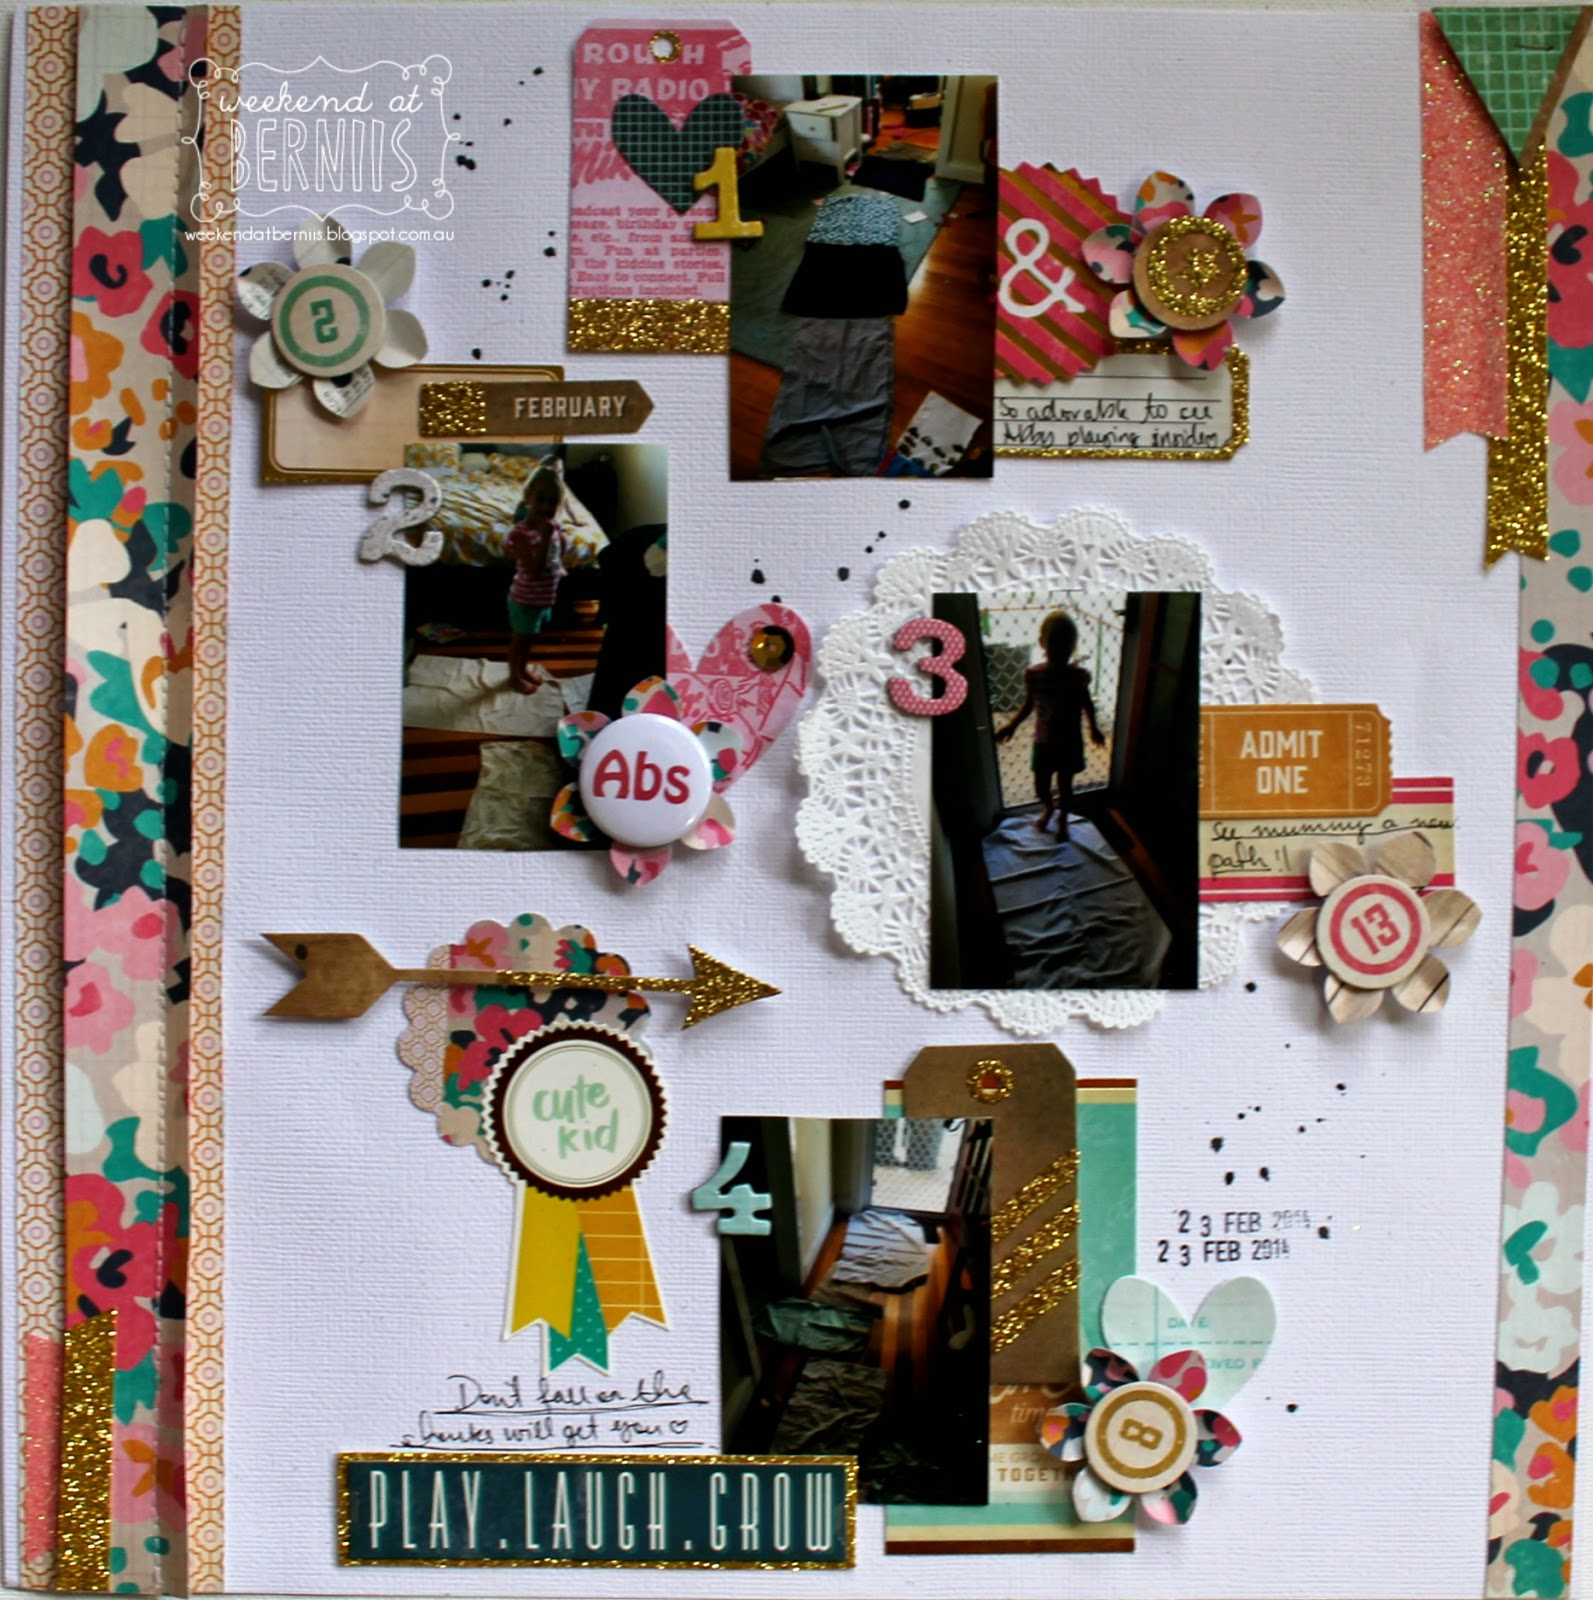 Play, Laugh, Grow layout by Bernii Miller using Craft Market collection by Crate Paper.